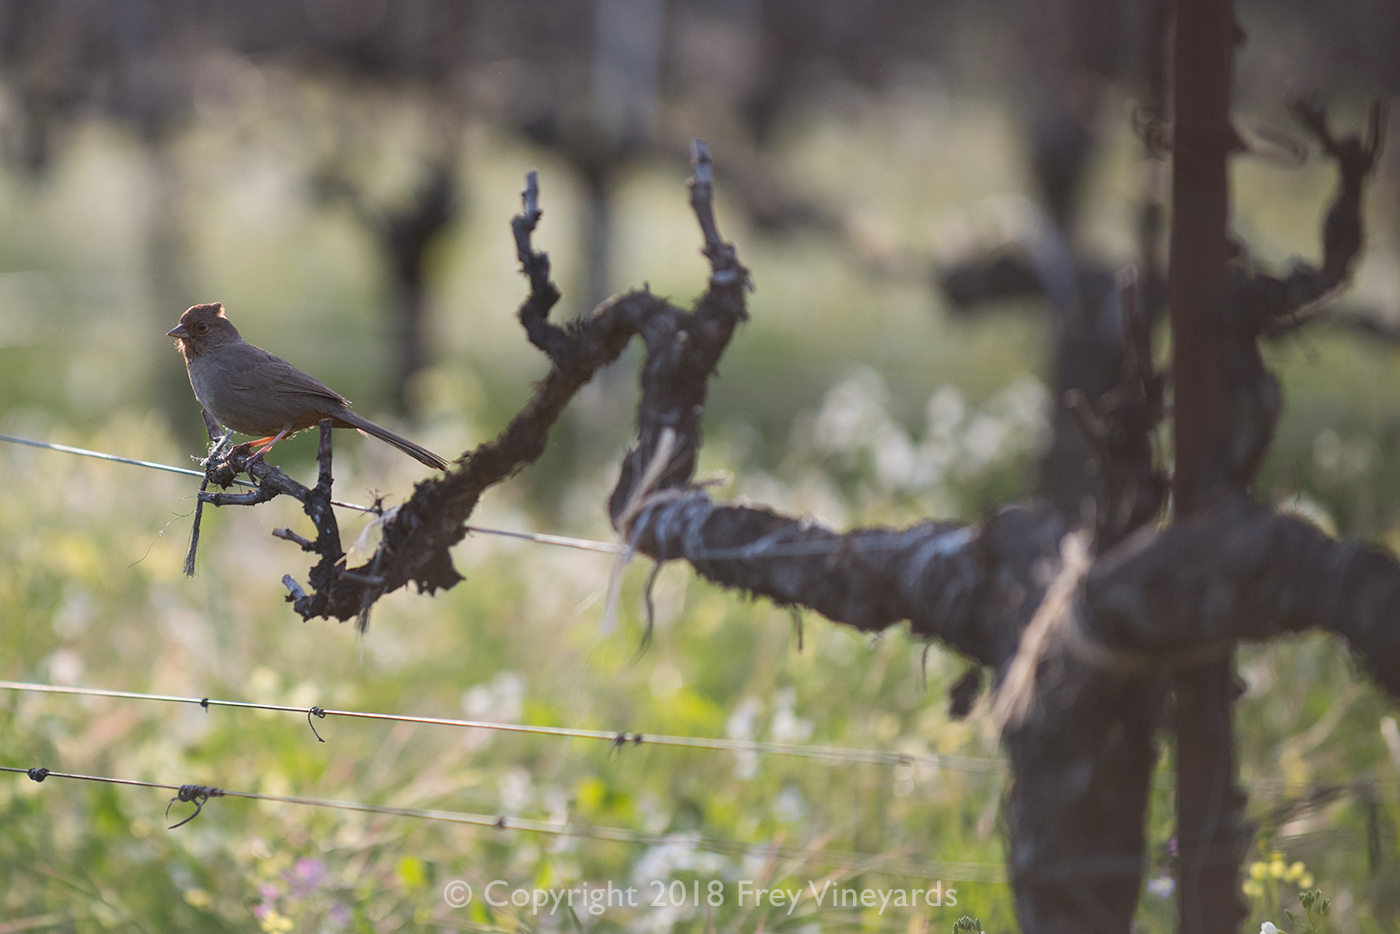 Bird in the vineyard